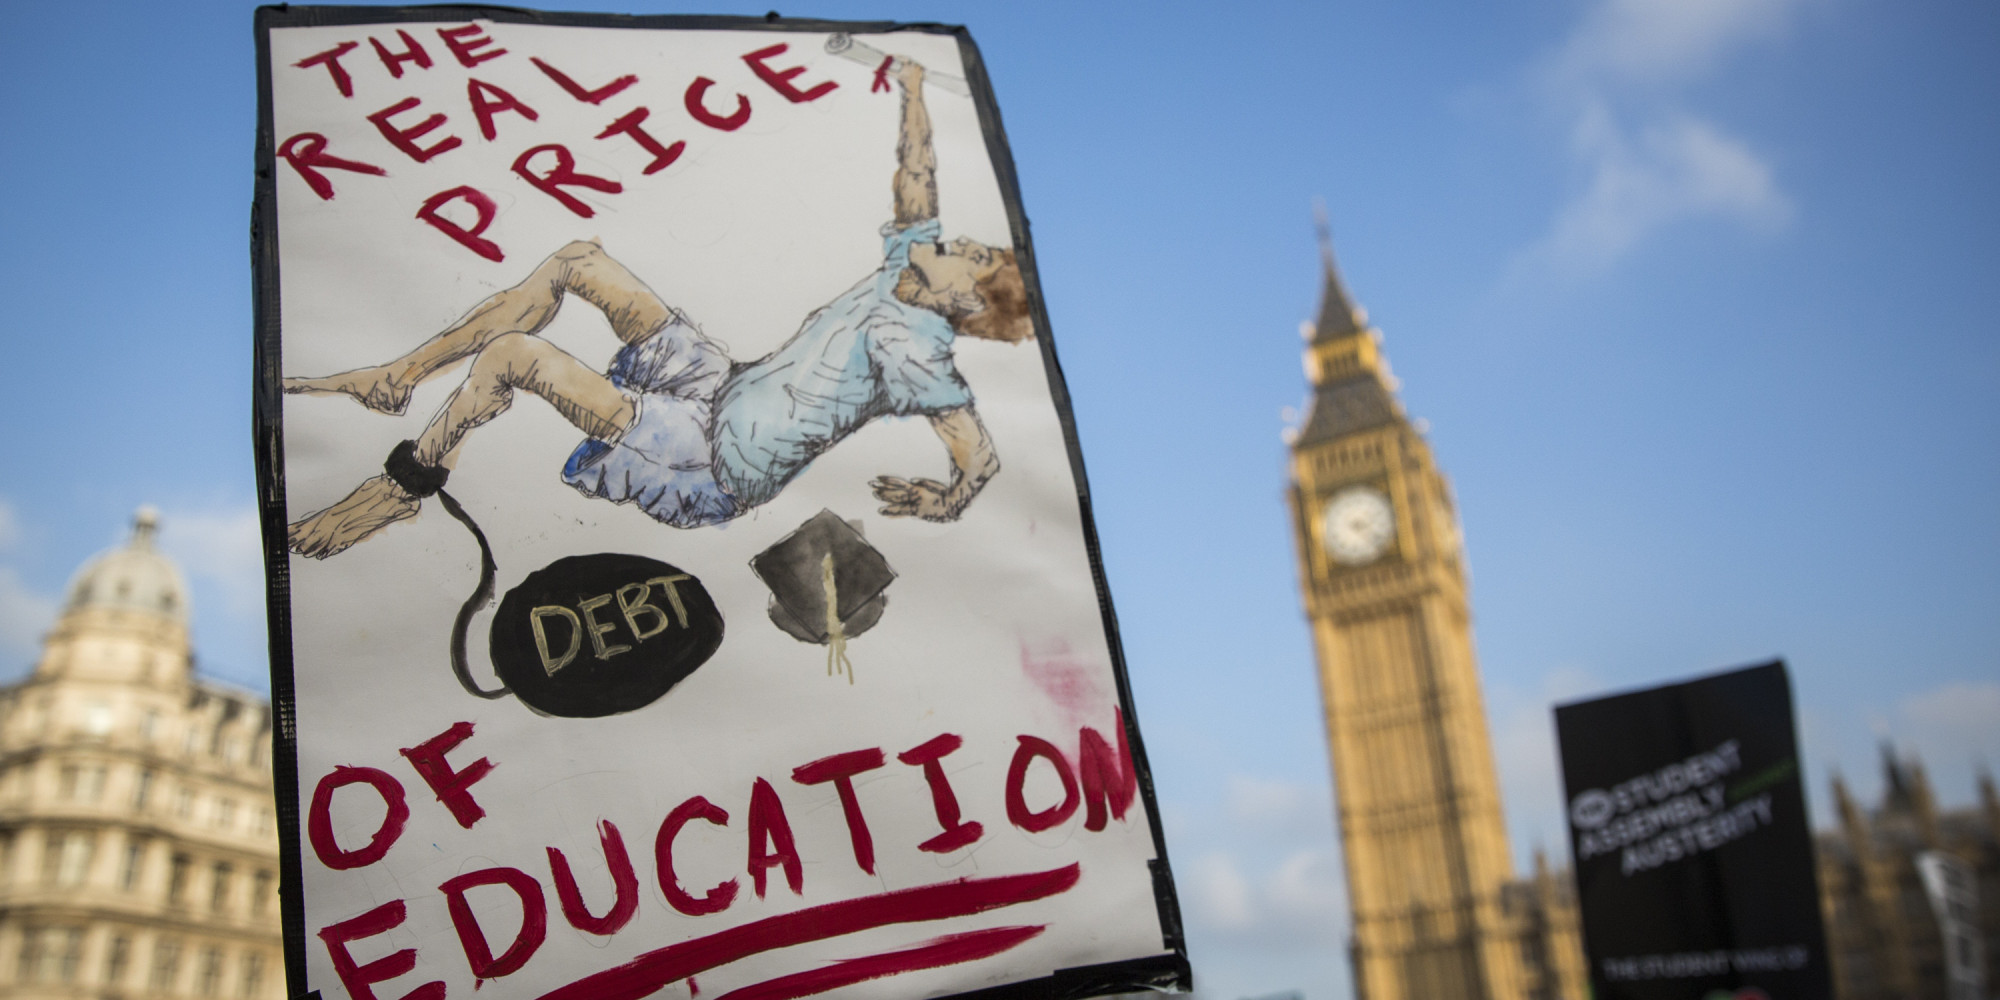 tuition fees Compare tuition fees schemes at public universities and colleges in europe.